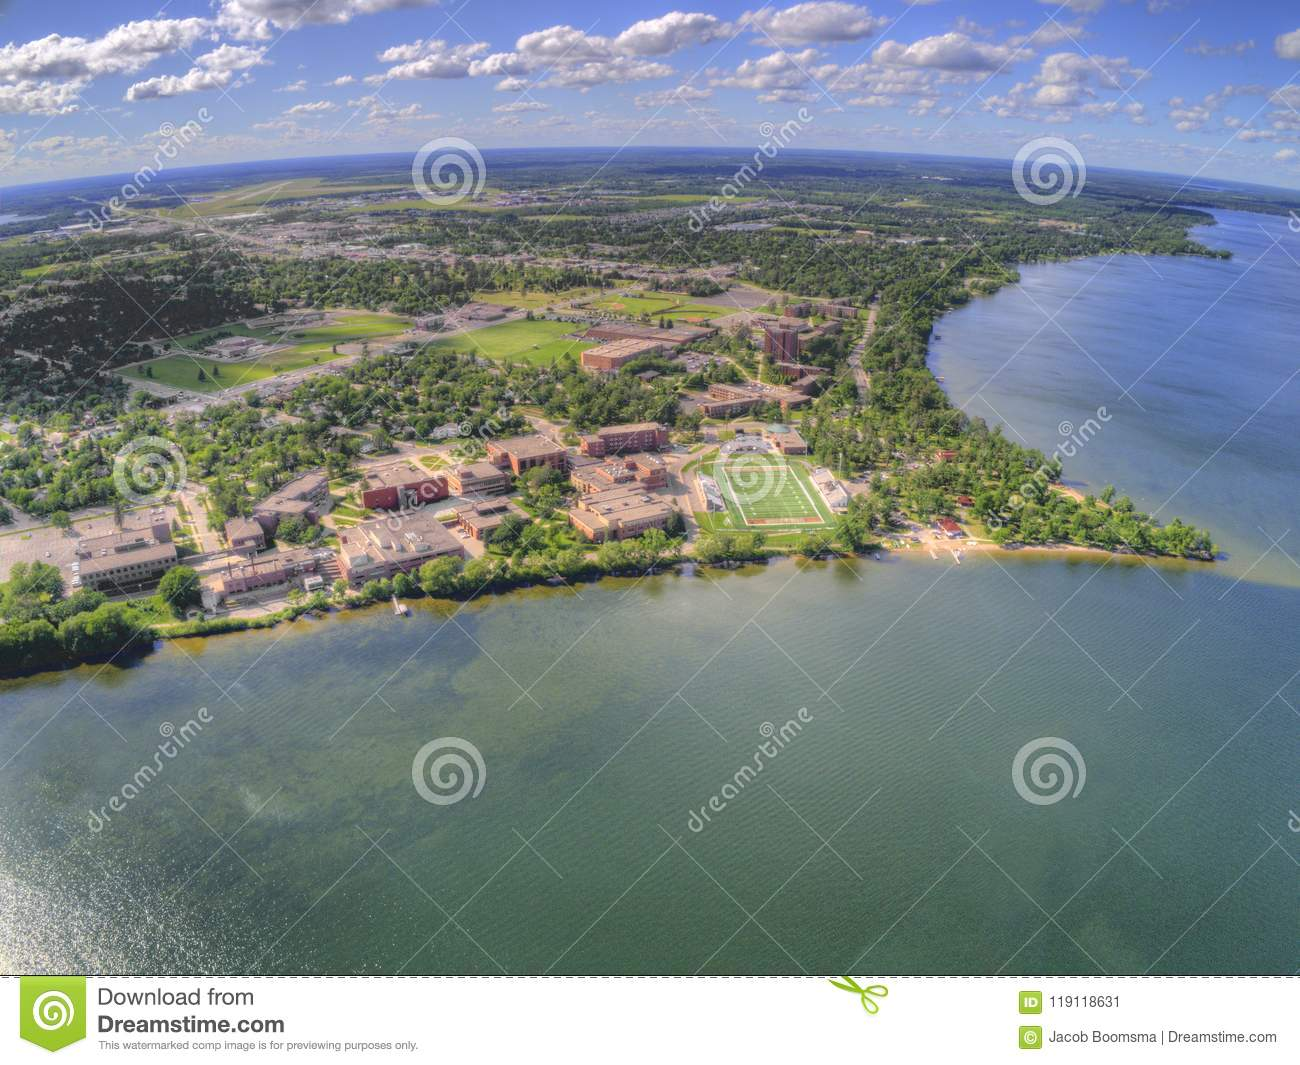 Bemidji State University is a College in a Town in Central Minnesota on the Shores of a Lake with the same Name